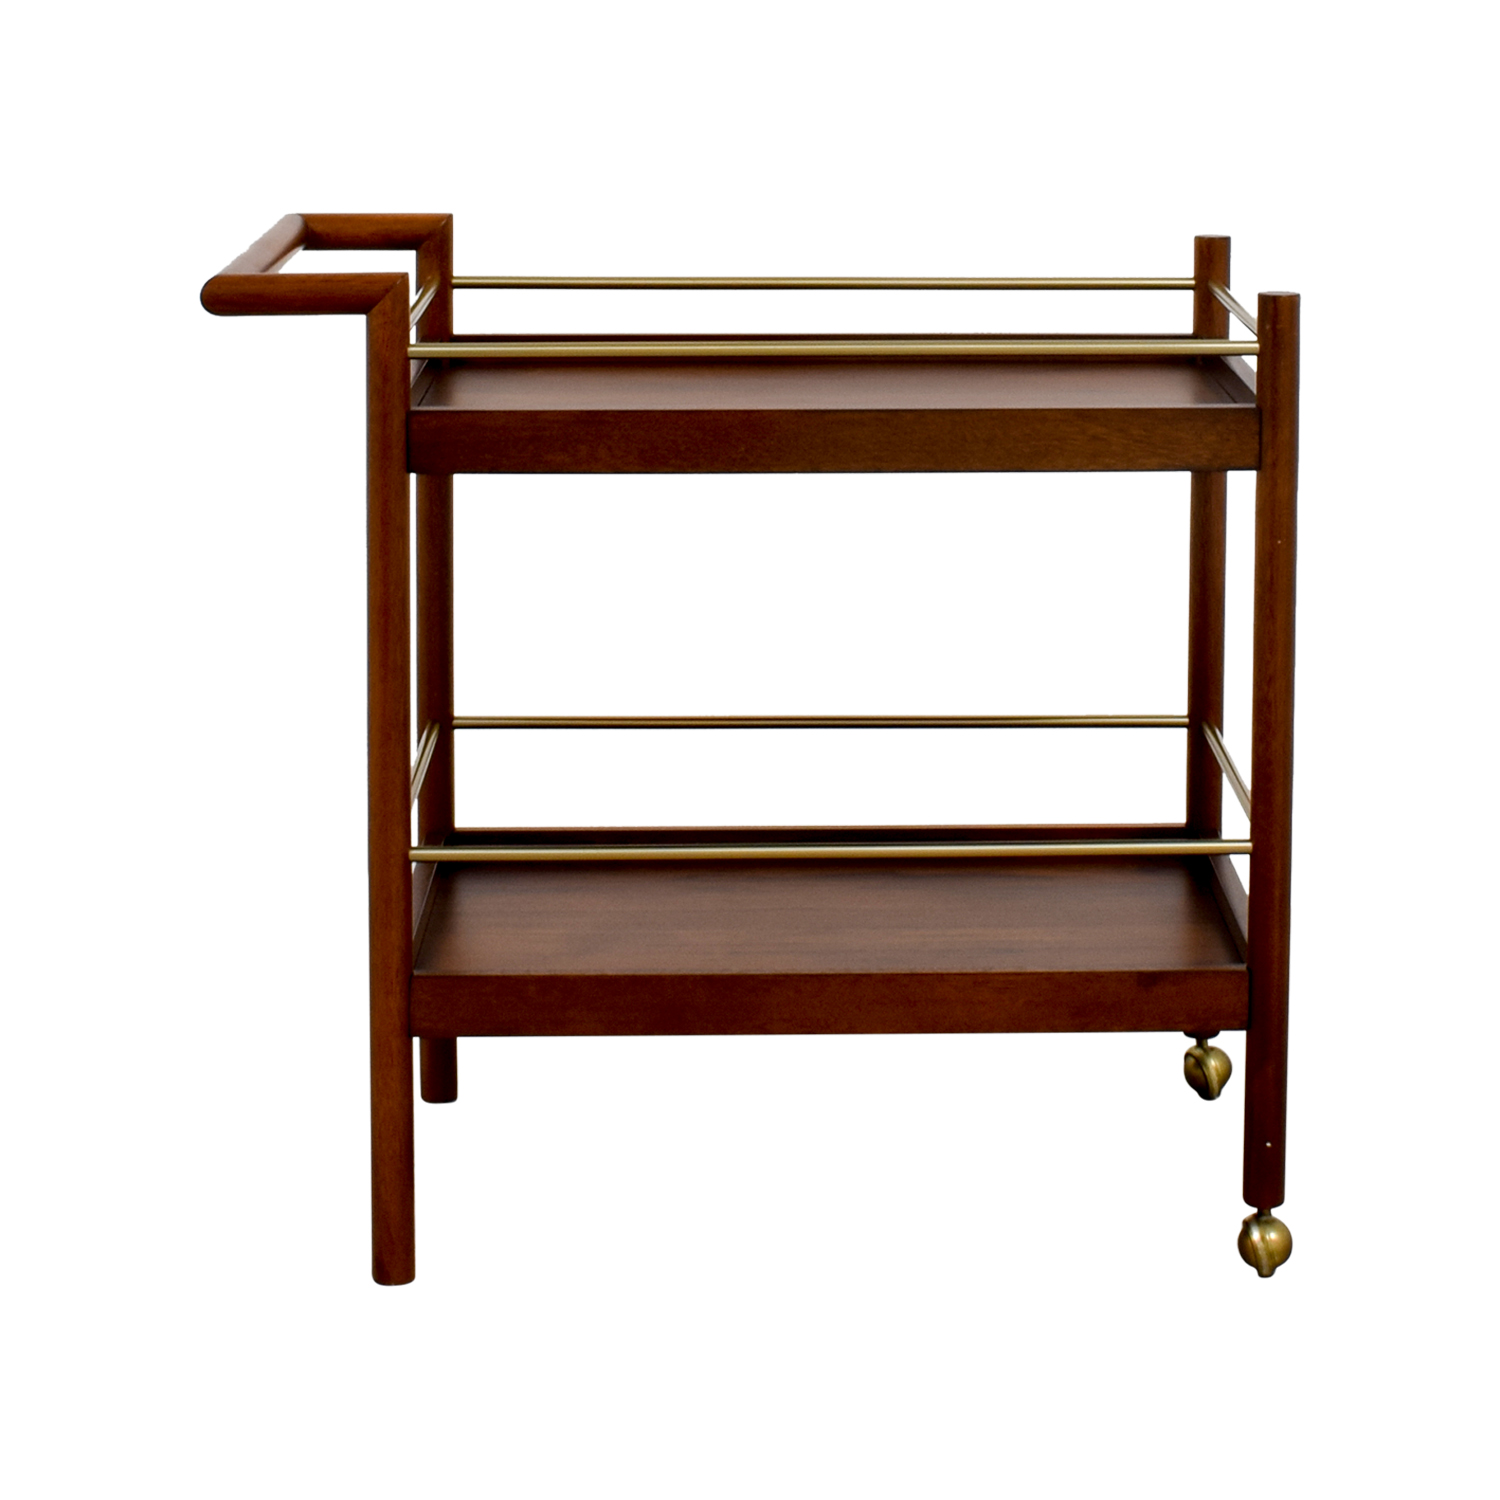 West elm bar cart / Tables